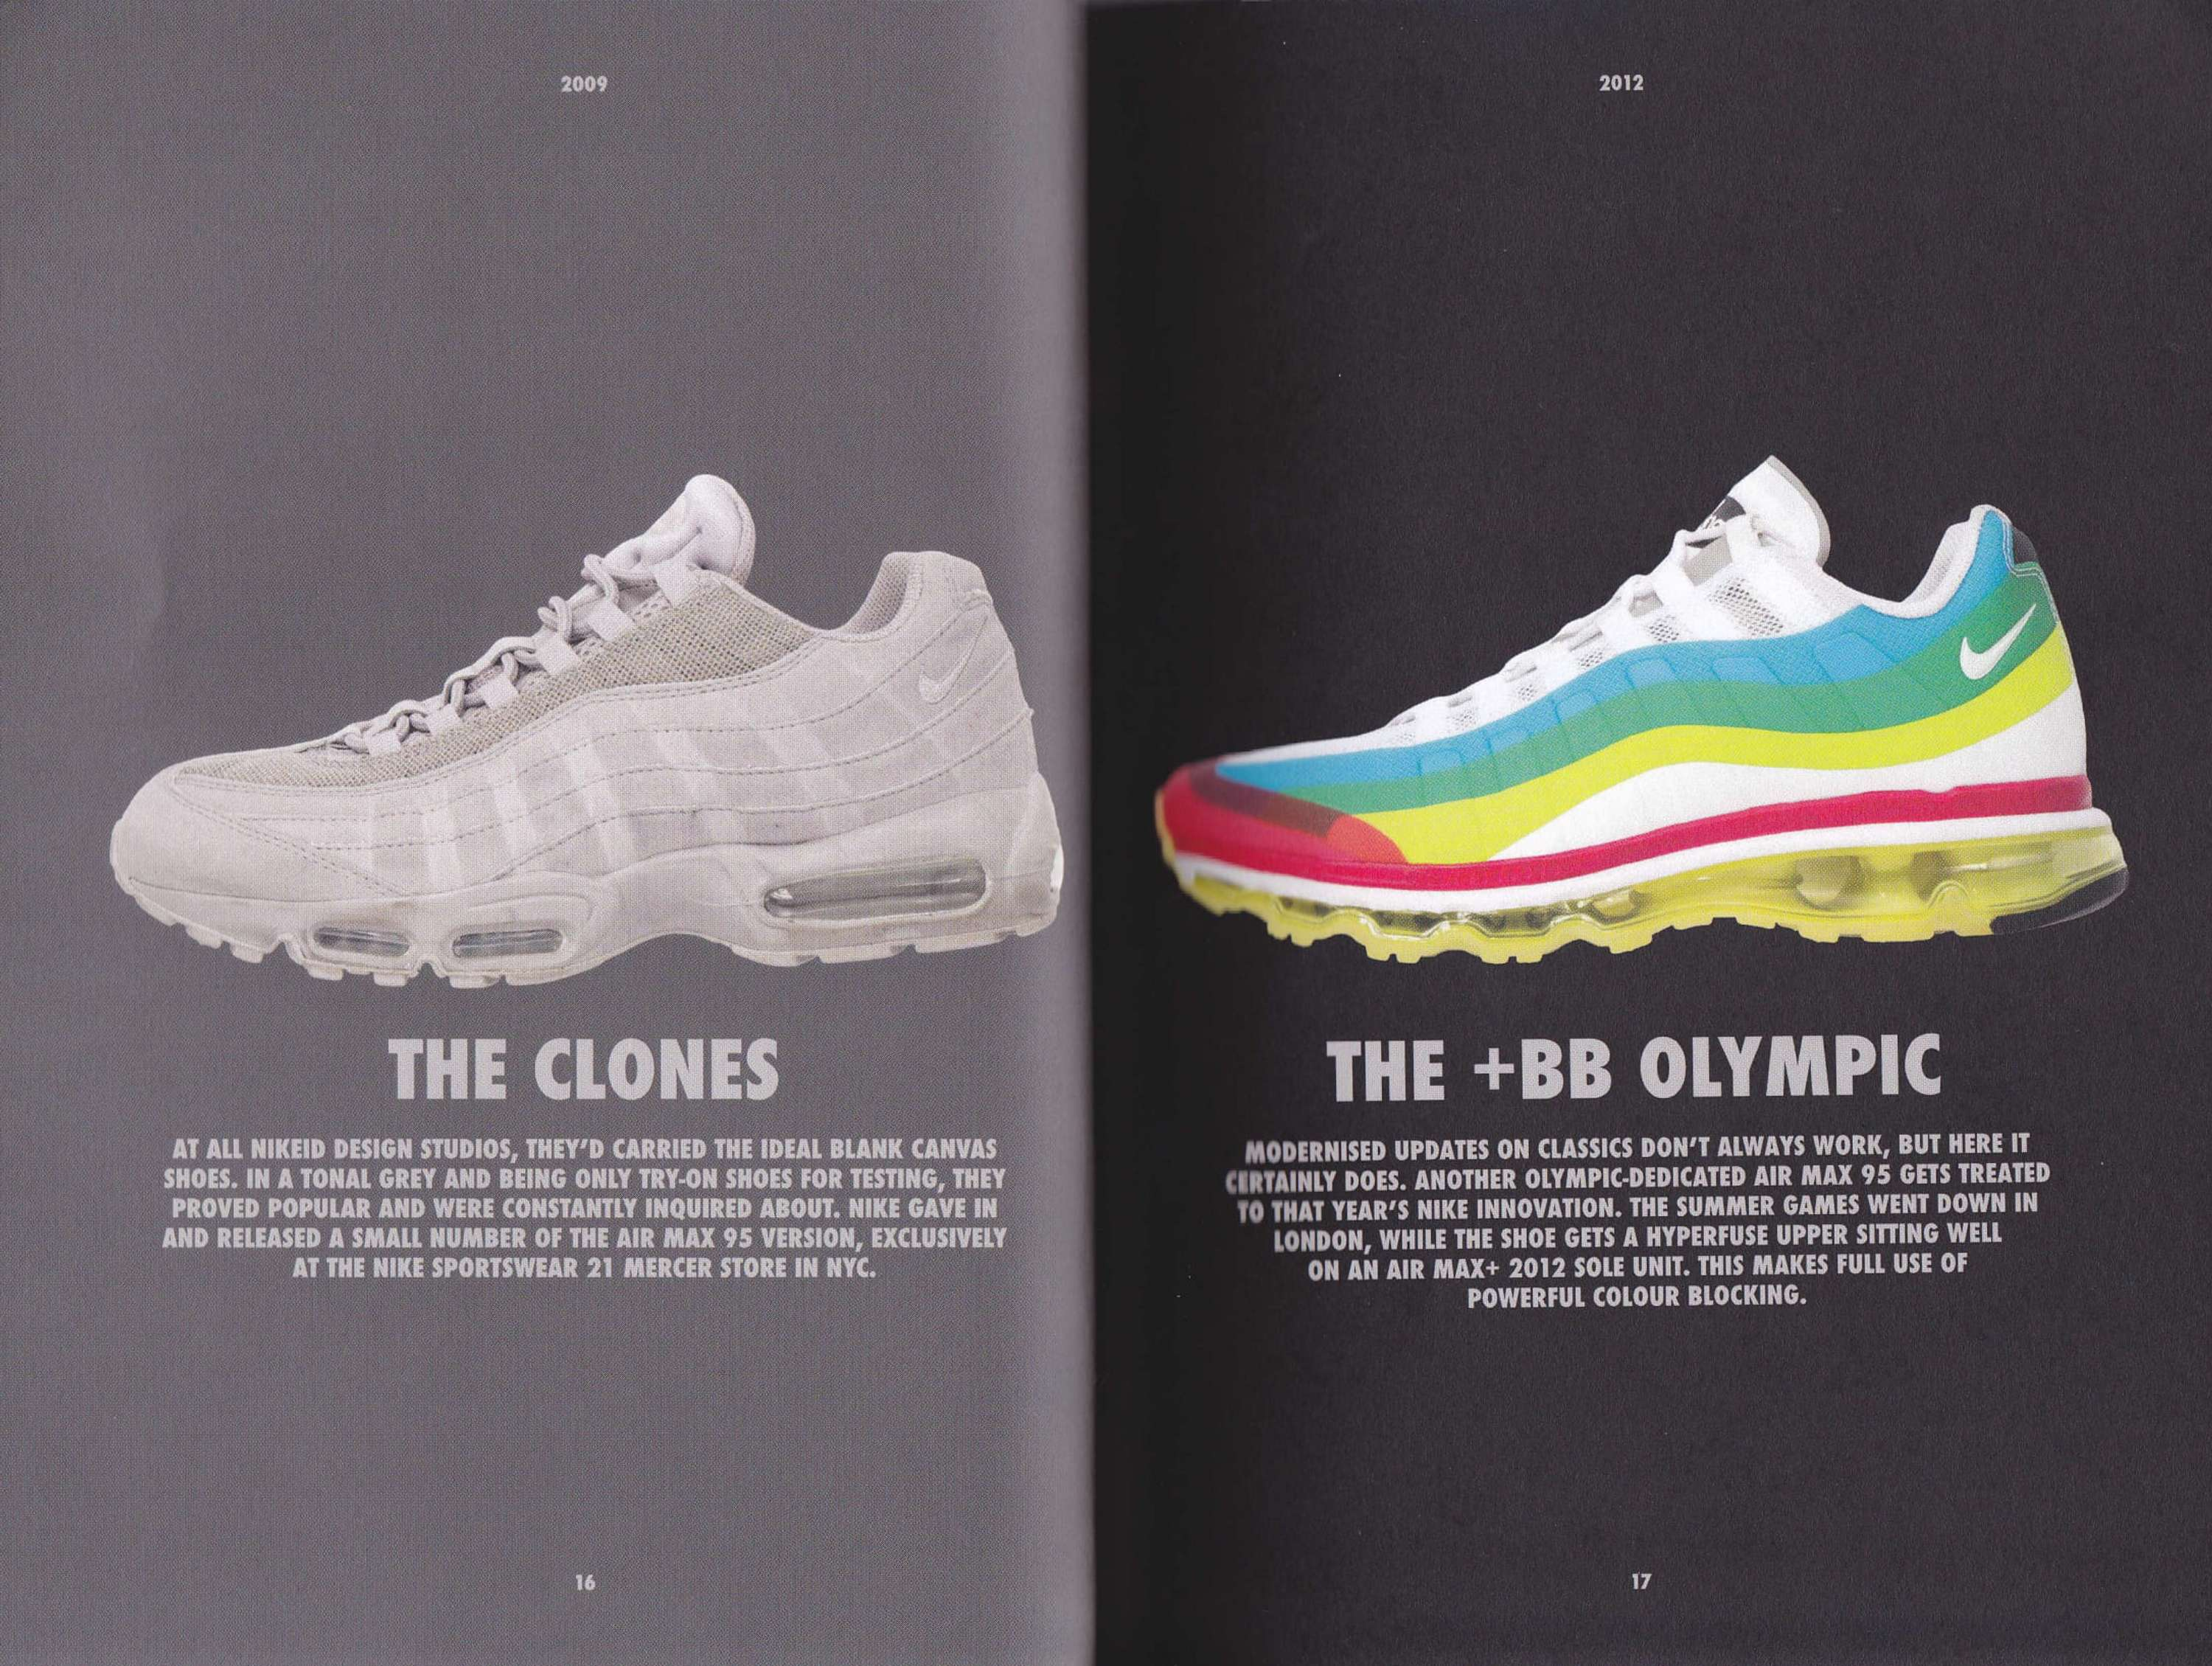 best service c3553 0cf3b An exhibition and accompanying book celebrated the 20 year anniversary of  the Nike Air Max 95, in partnership with sports footwear retailer, size